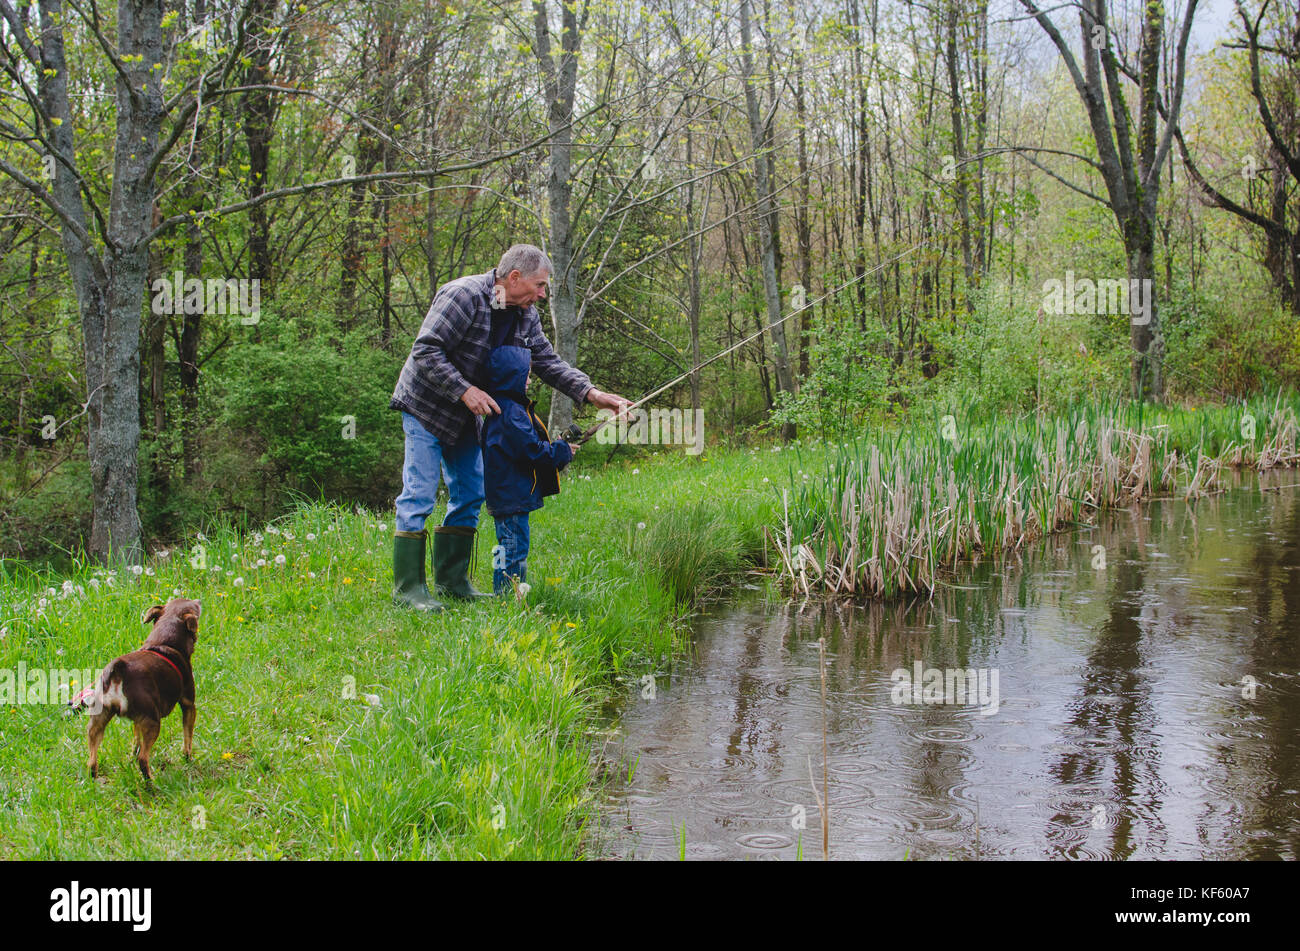 A grandfather and grandson fishing - Stock Image